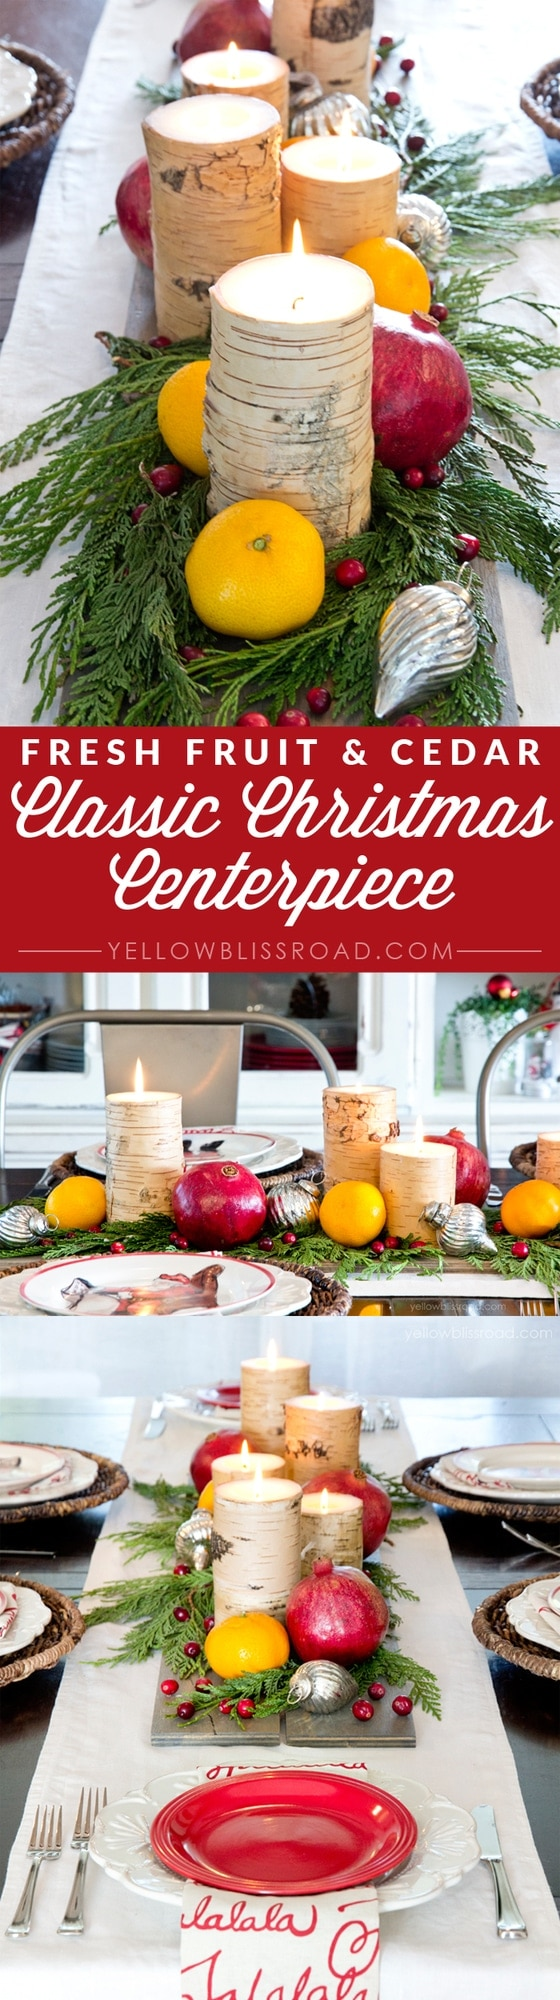 Fresh Fruit, Cedar and Candles - An Easy and Classic Christmas Centerpiece